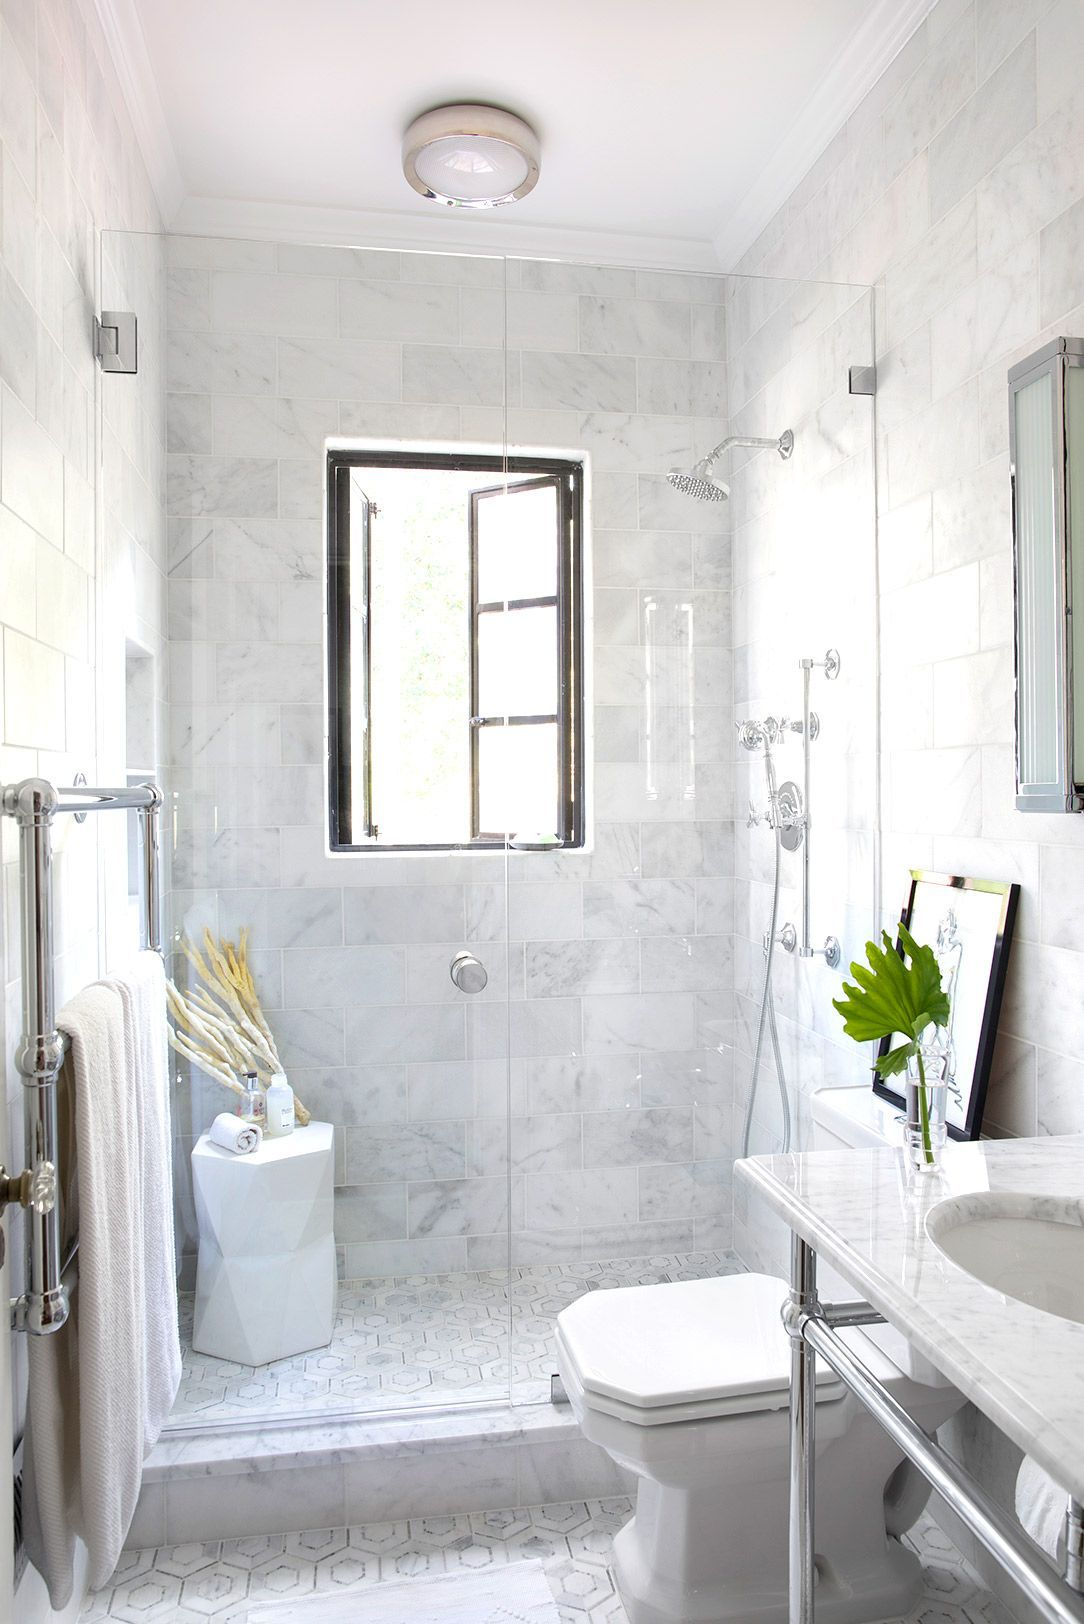 All-white marble bathroom with glass shower #marblebathrooms ...